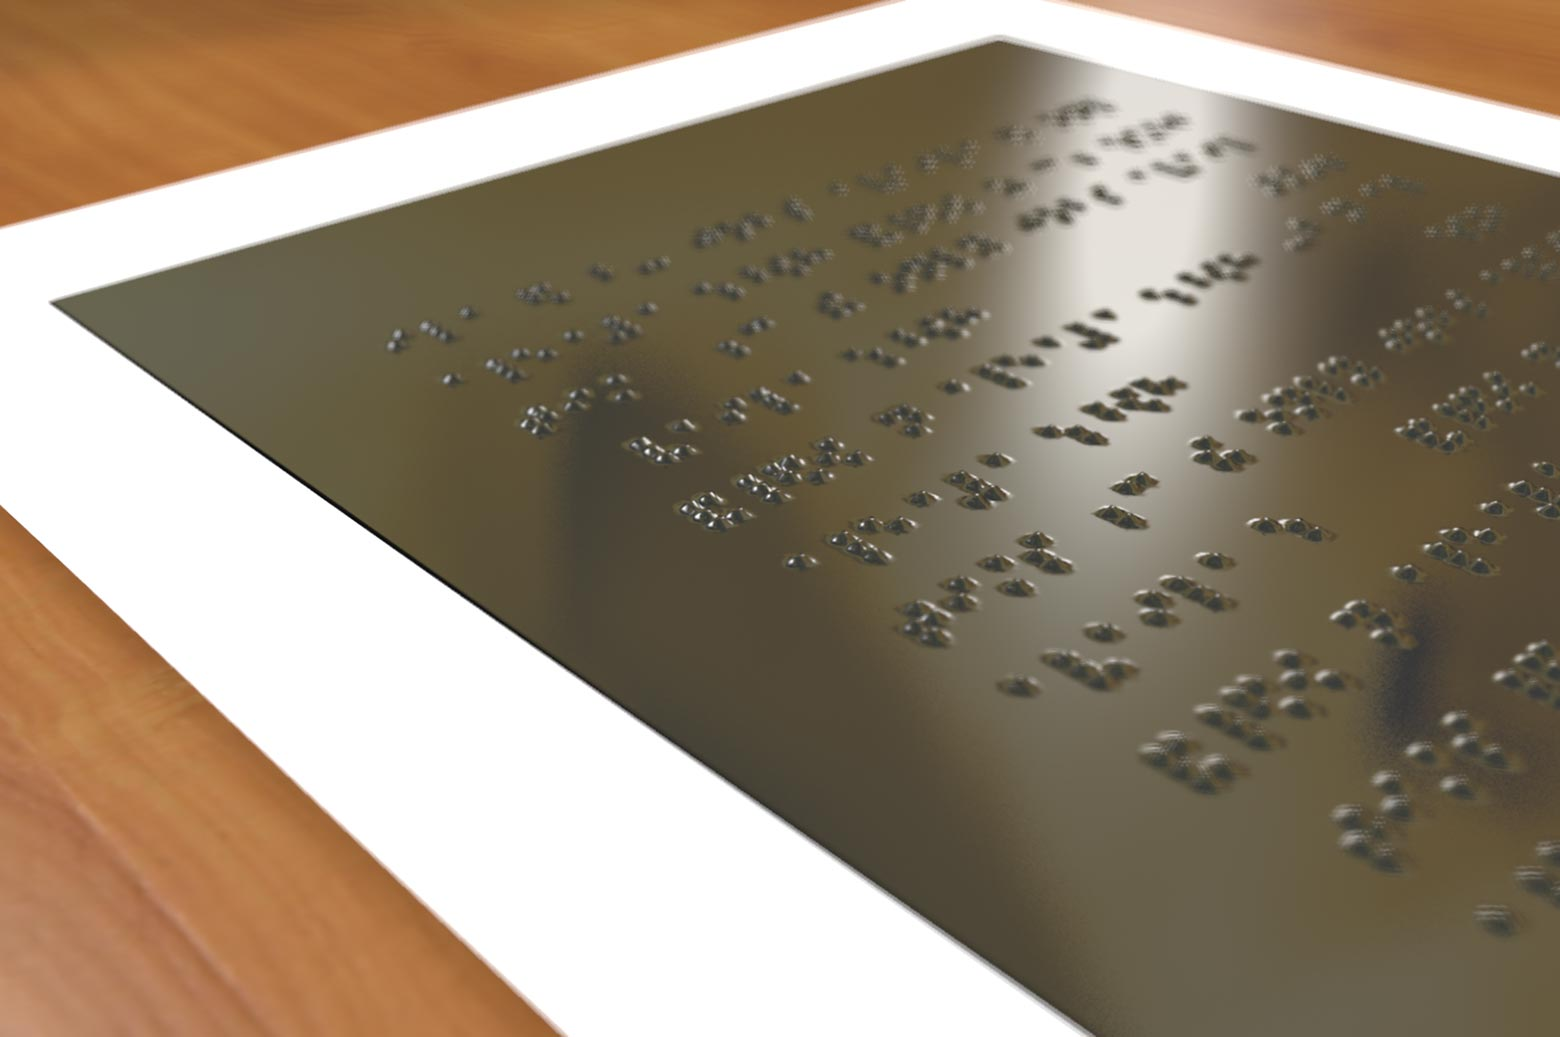 Tablet showing Braille